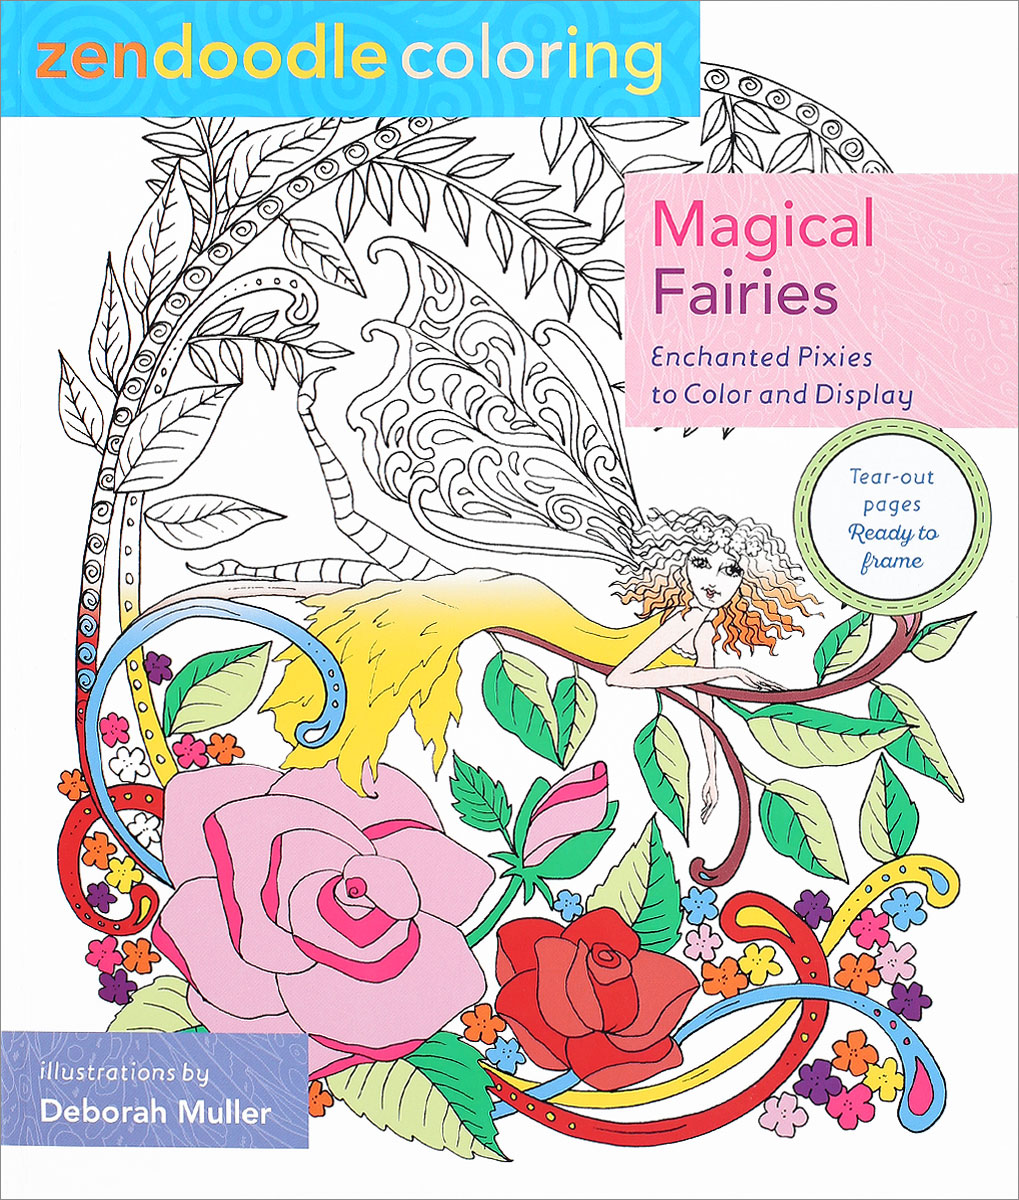 Zendoodle Coloring: Magical Fairies: Enchanted Pixies to Color and Display how to draw fairies and mermaids